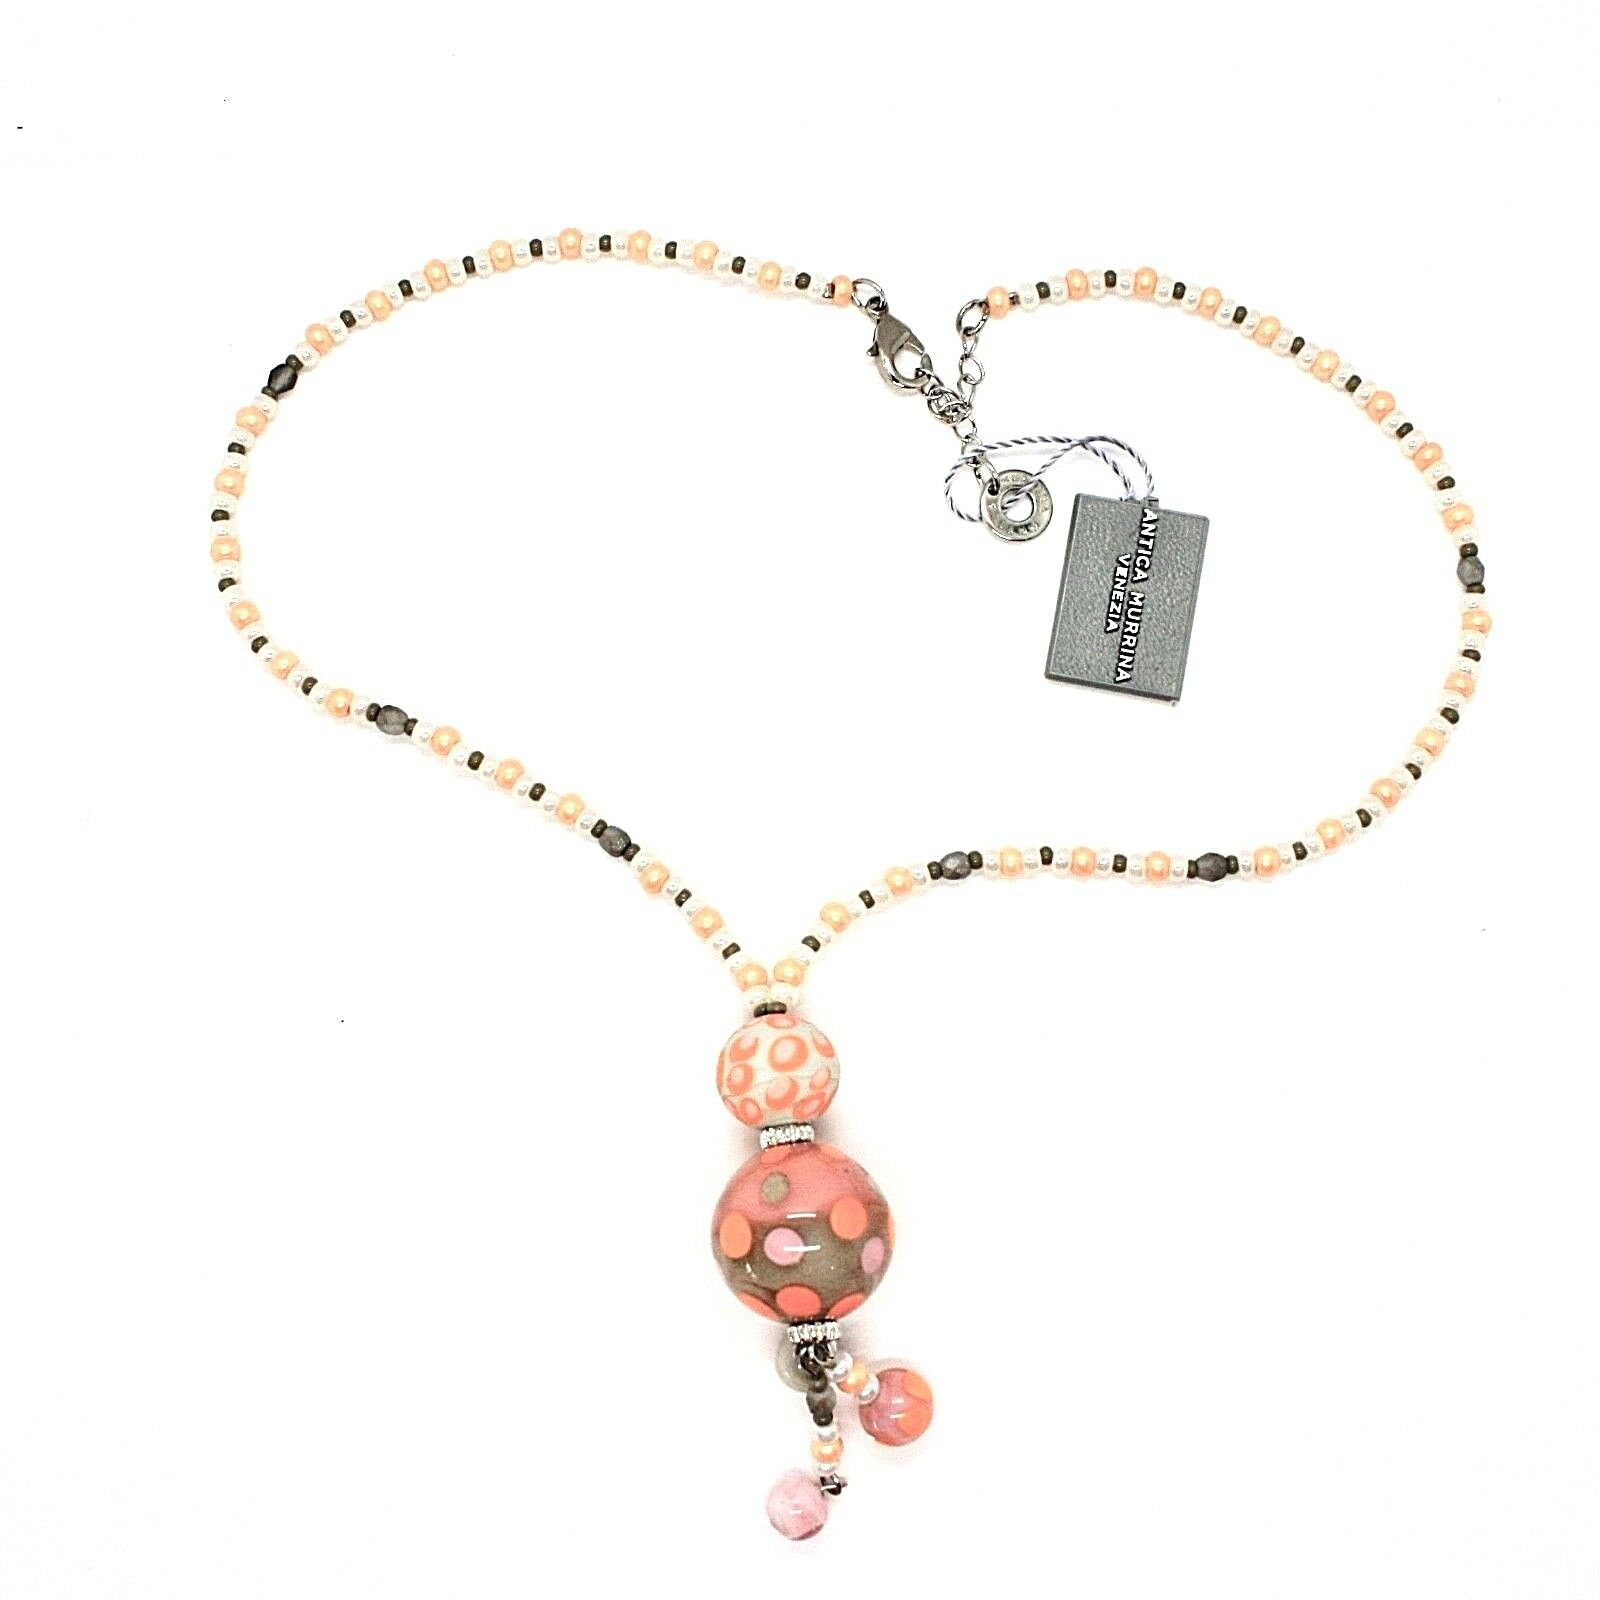 NECKLACE ANTICA MURRINA VENEZIA WITH MURANO GLASS ORANGE AND BEIGE CO964A25